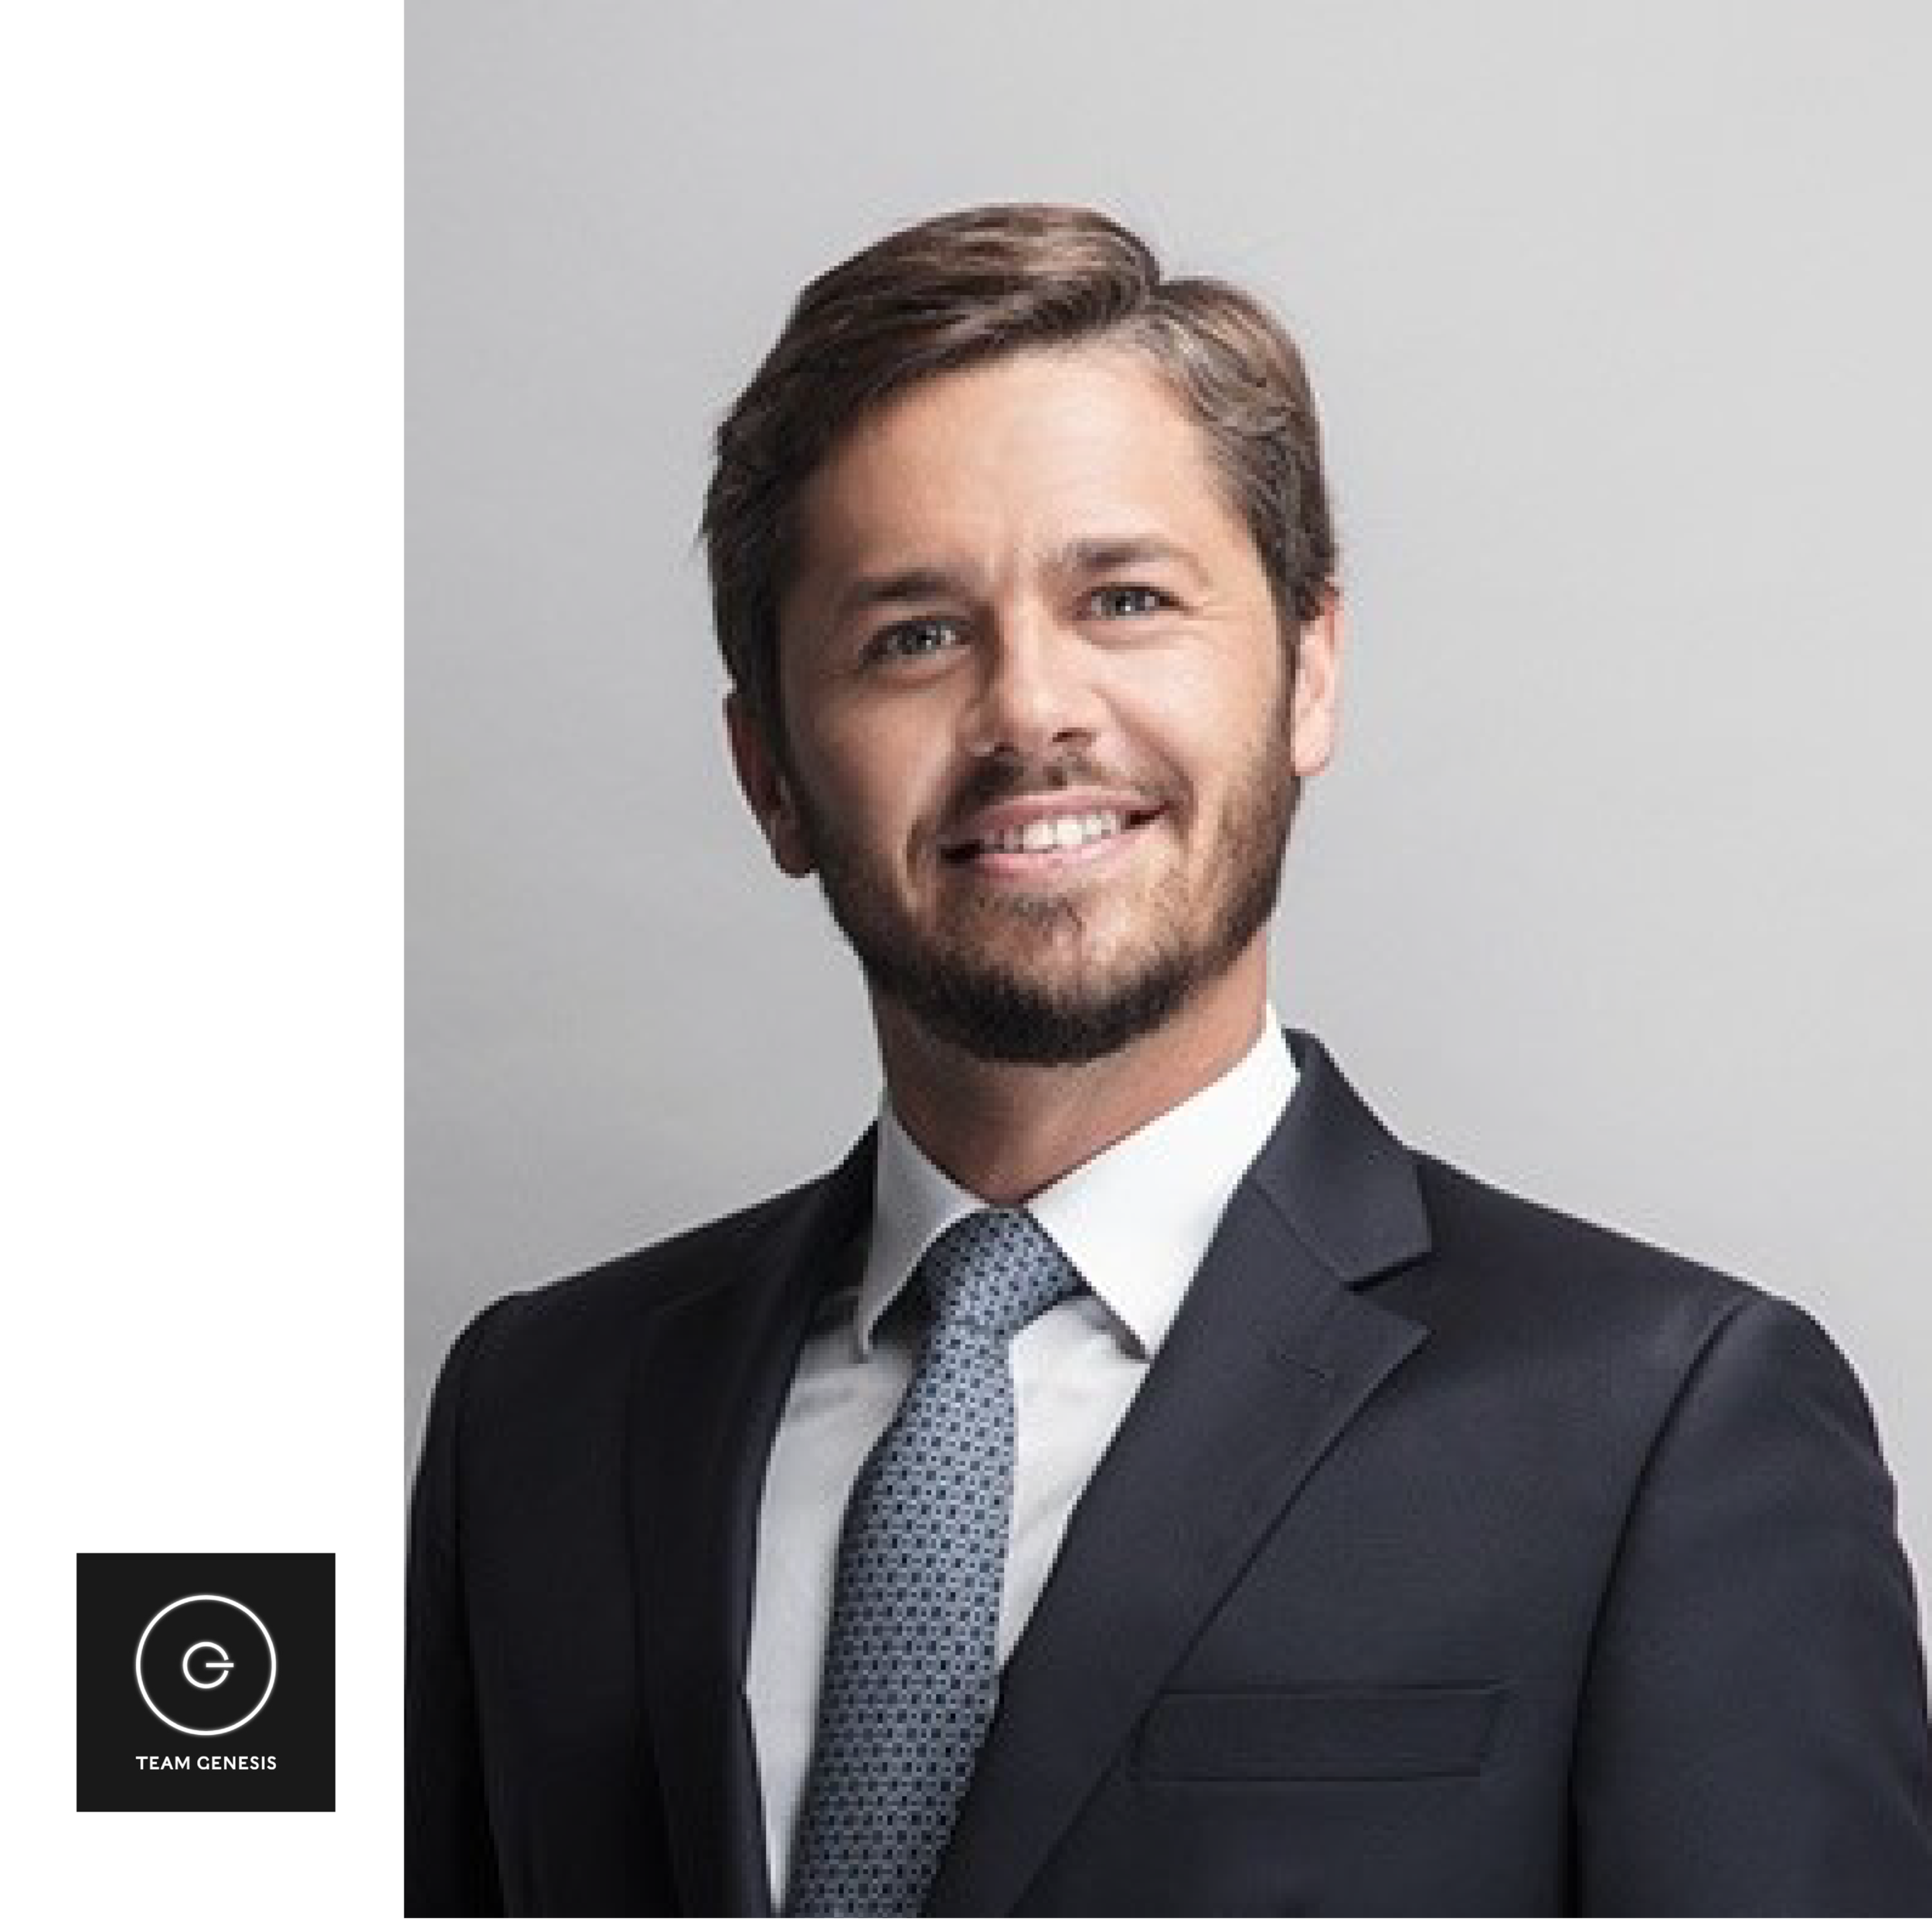 Luís Roquette Geraldes  Luis is the coordinator of Team Genesis, which provides legal services in the area of entrepreneurship and innovation, and was especially created to advise startups, SMEs, business angels, venture capital and private equity entering the Portuguese ecosystem.